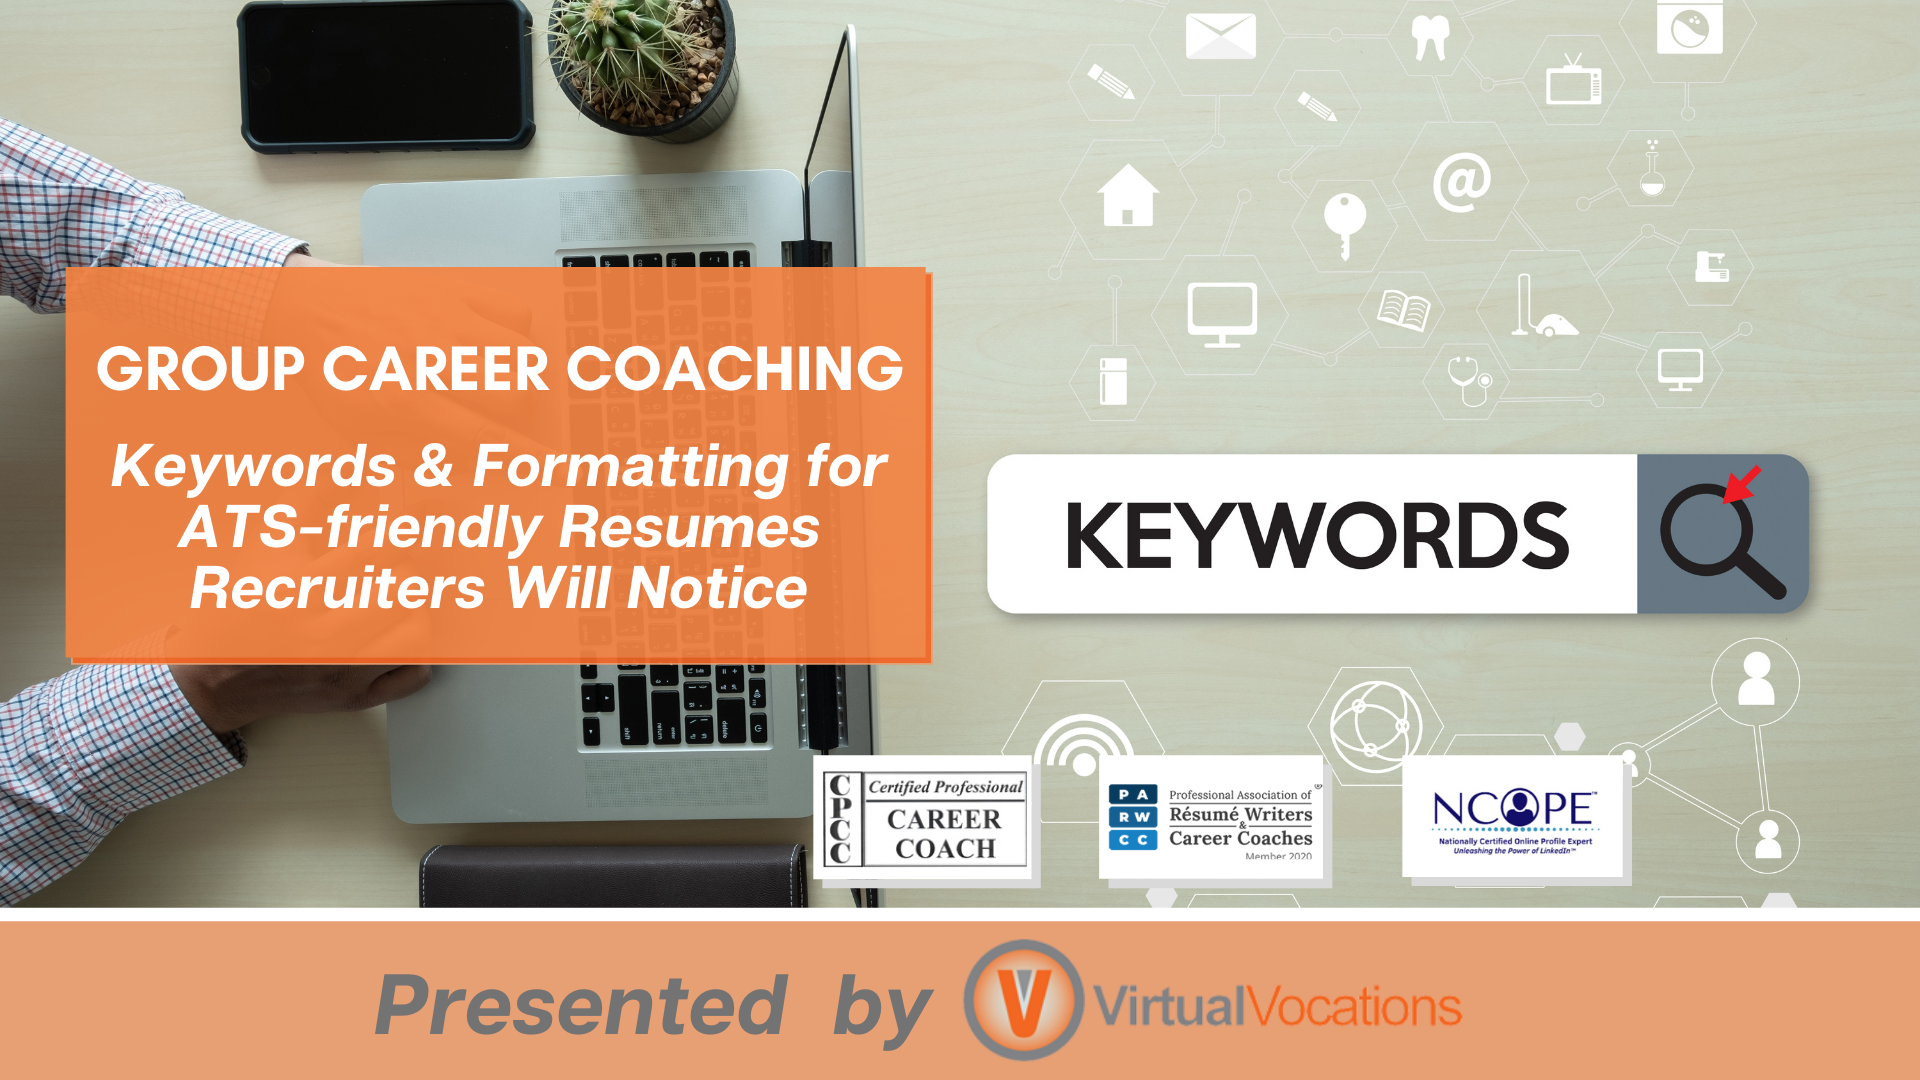 Keywords & Formatting for ATS-friendly Resumes Recruiters Will Notice